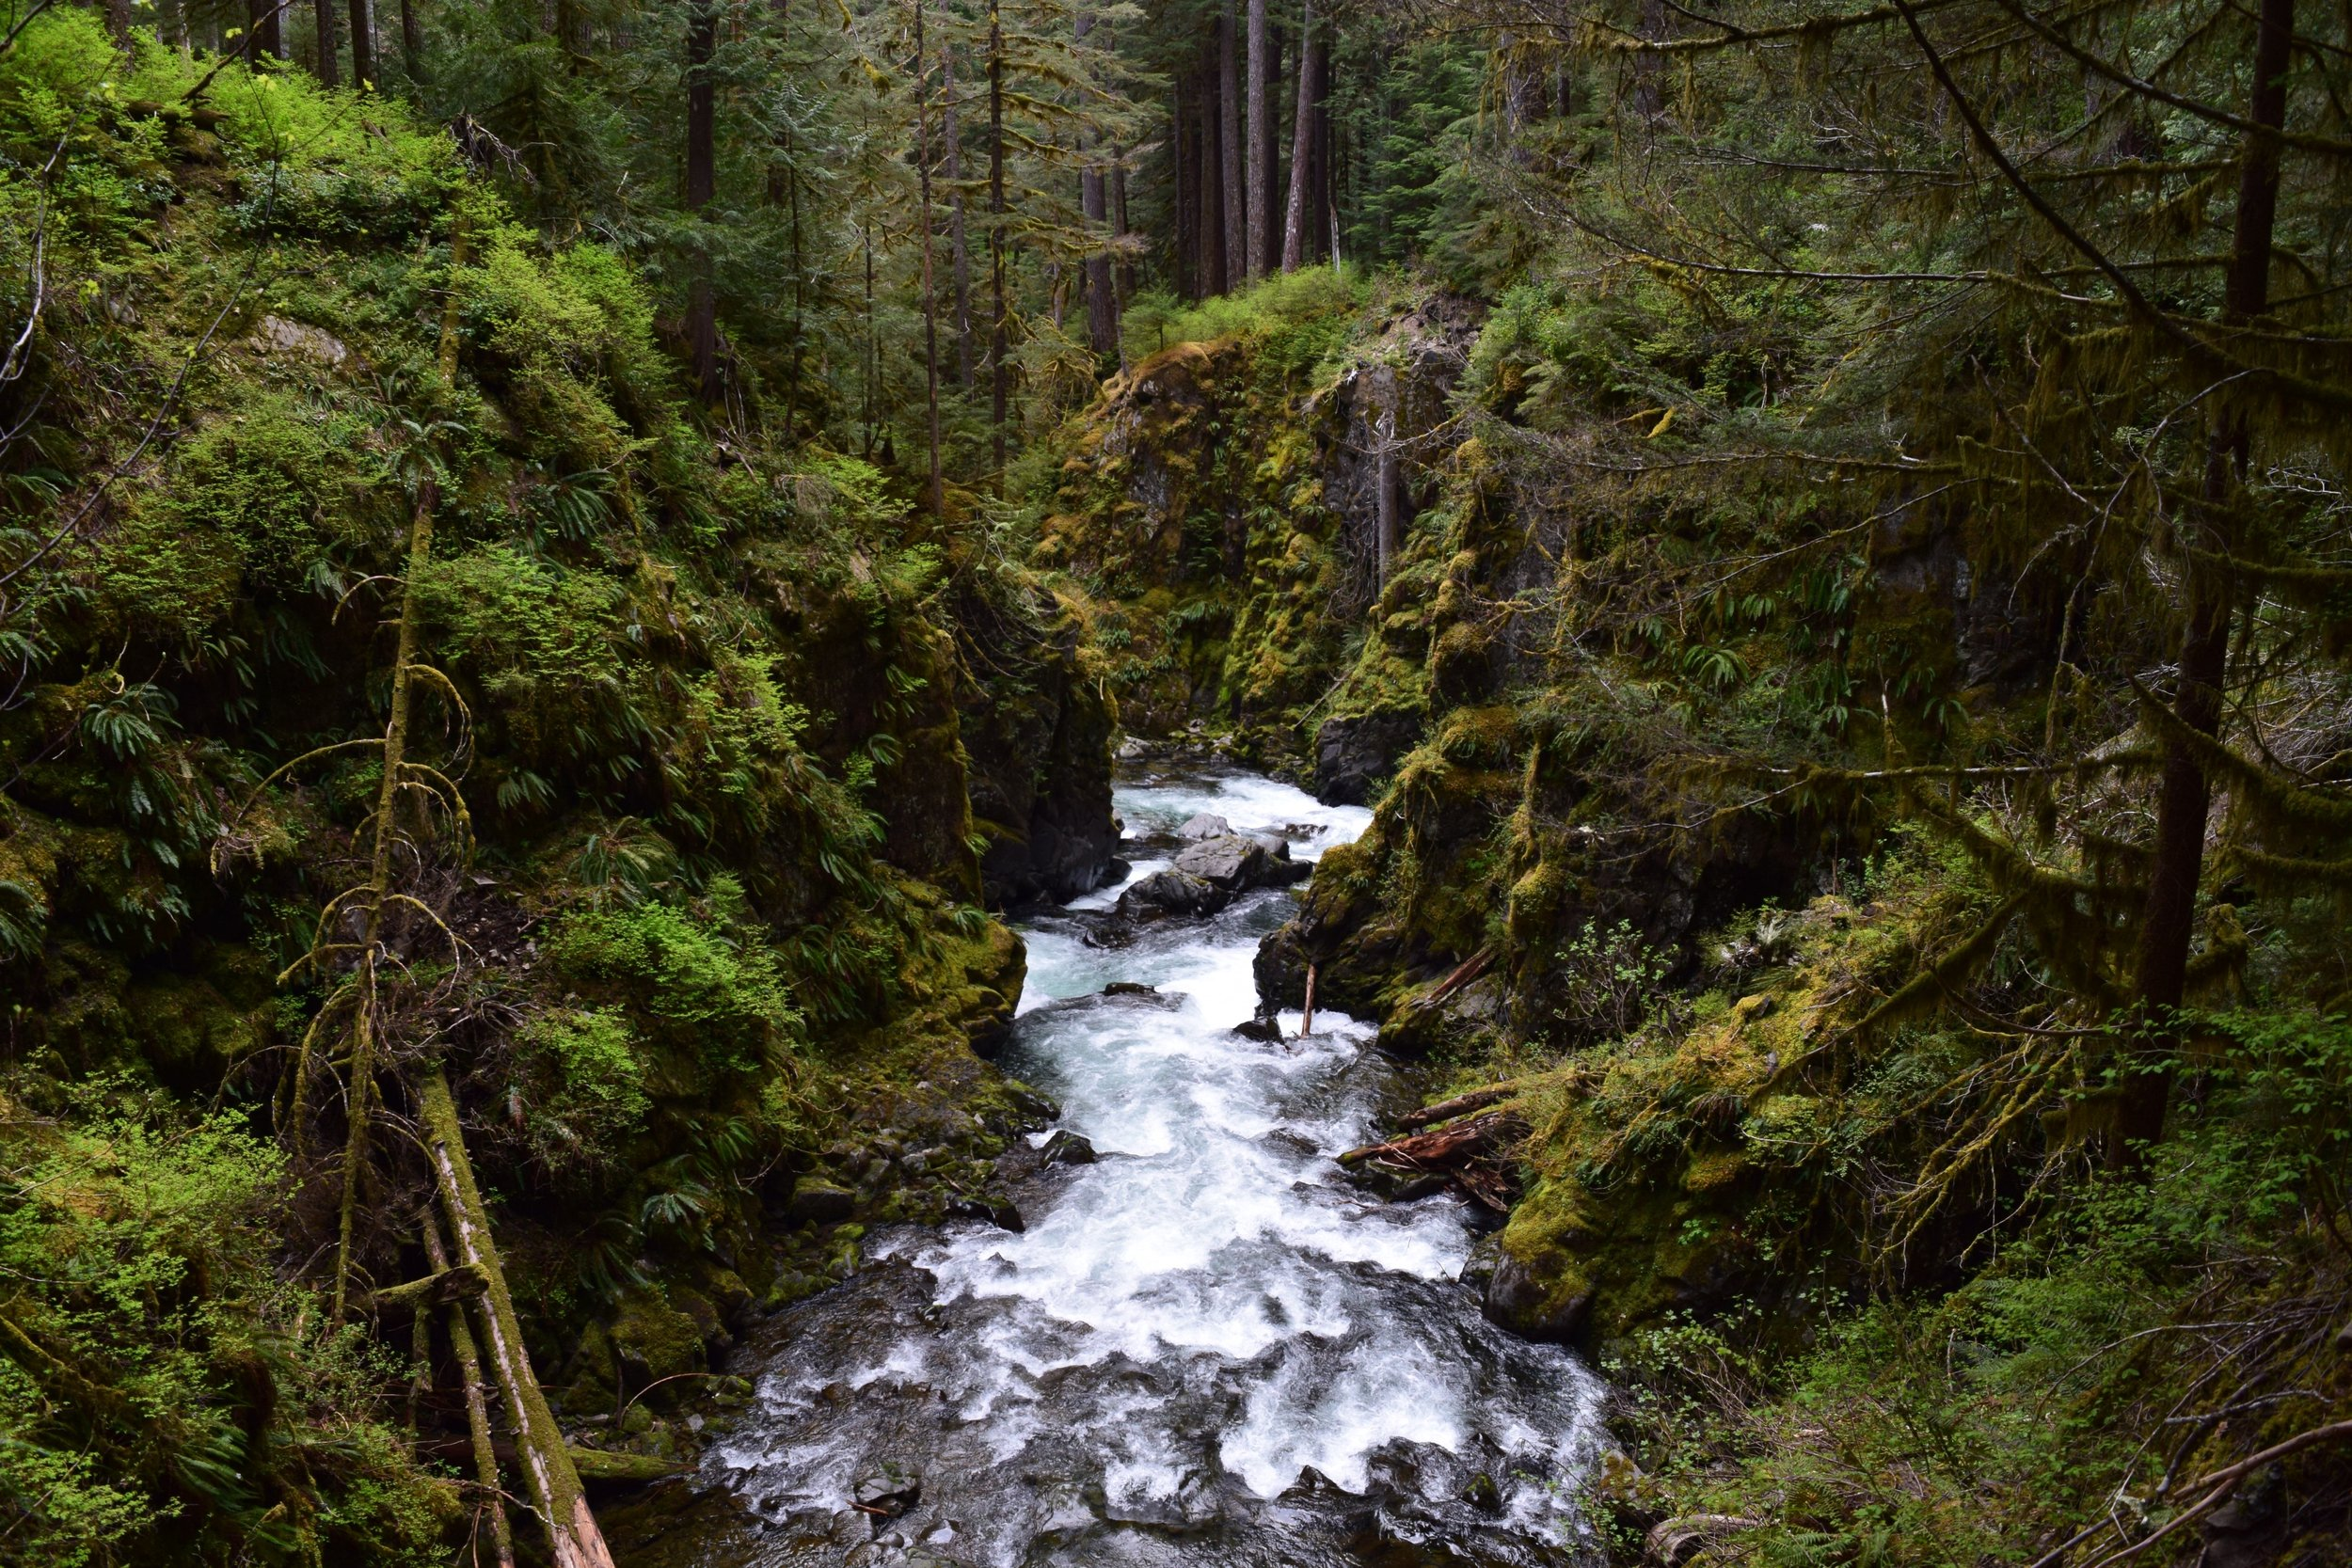 The picturesque Sol Duc River Valley